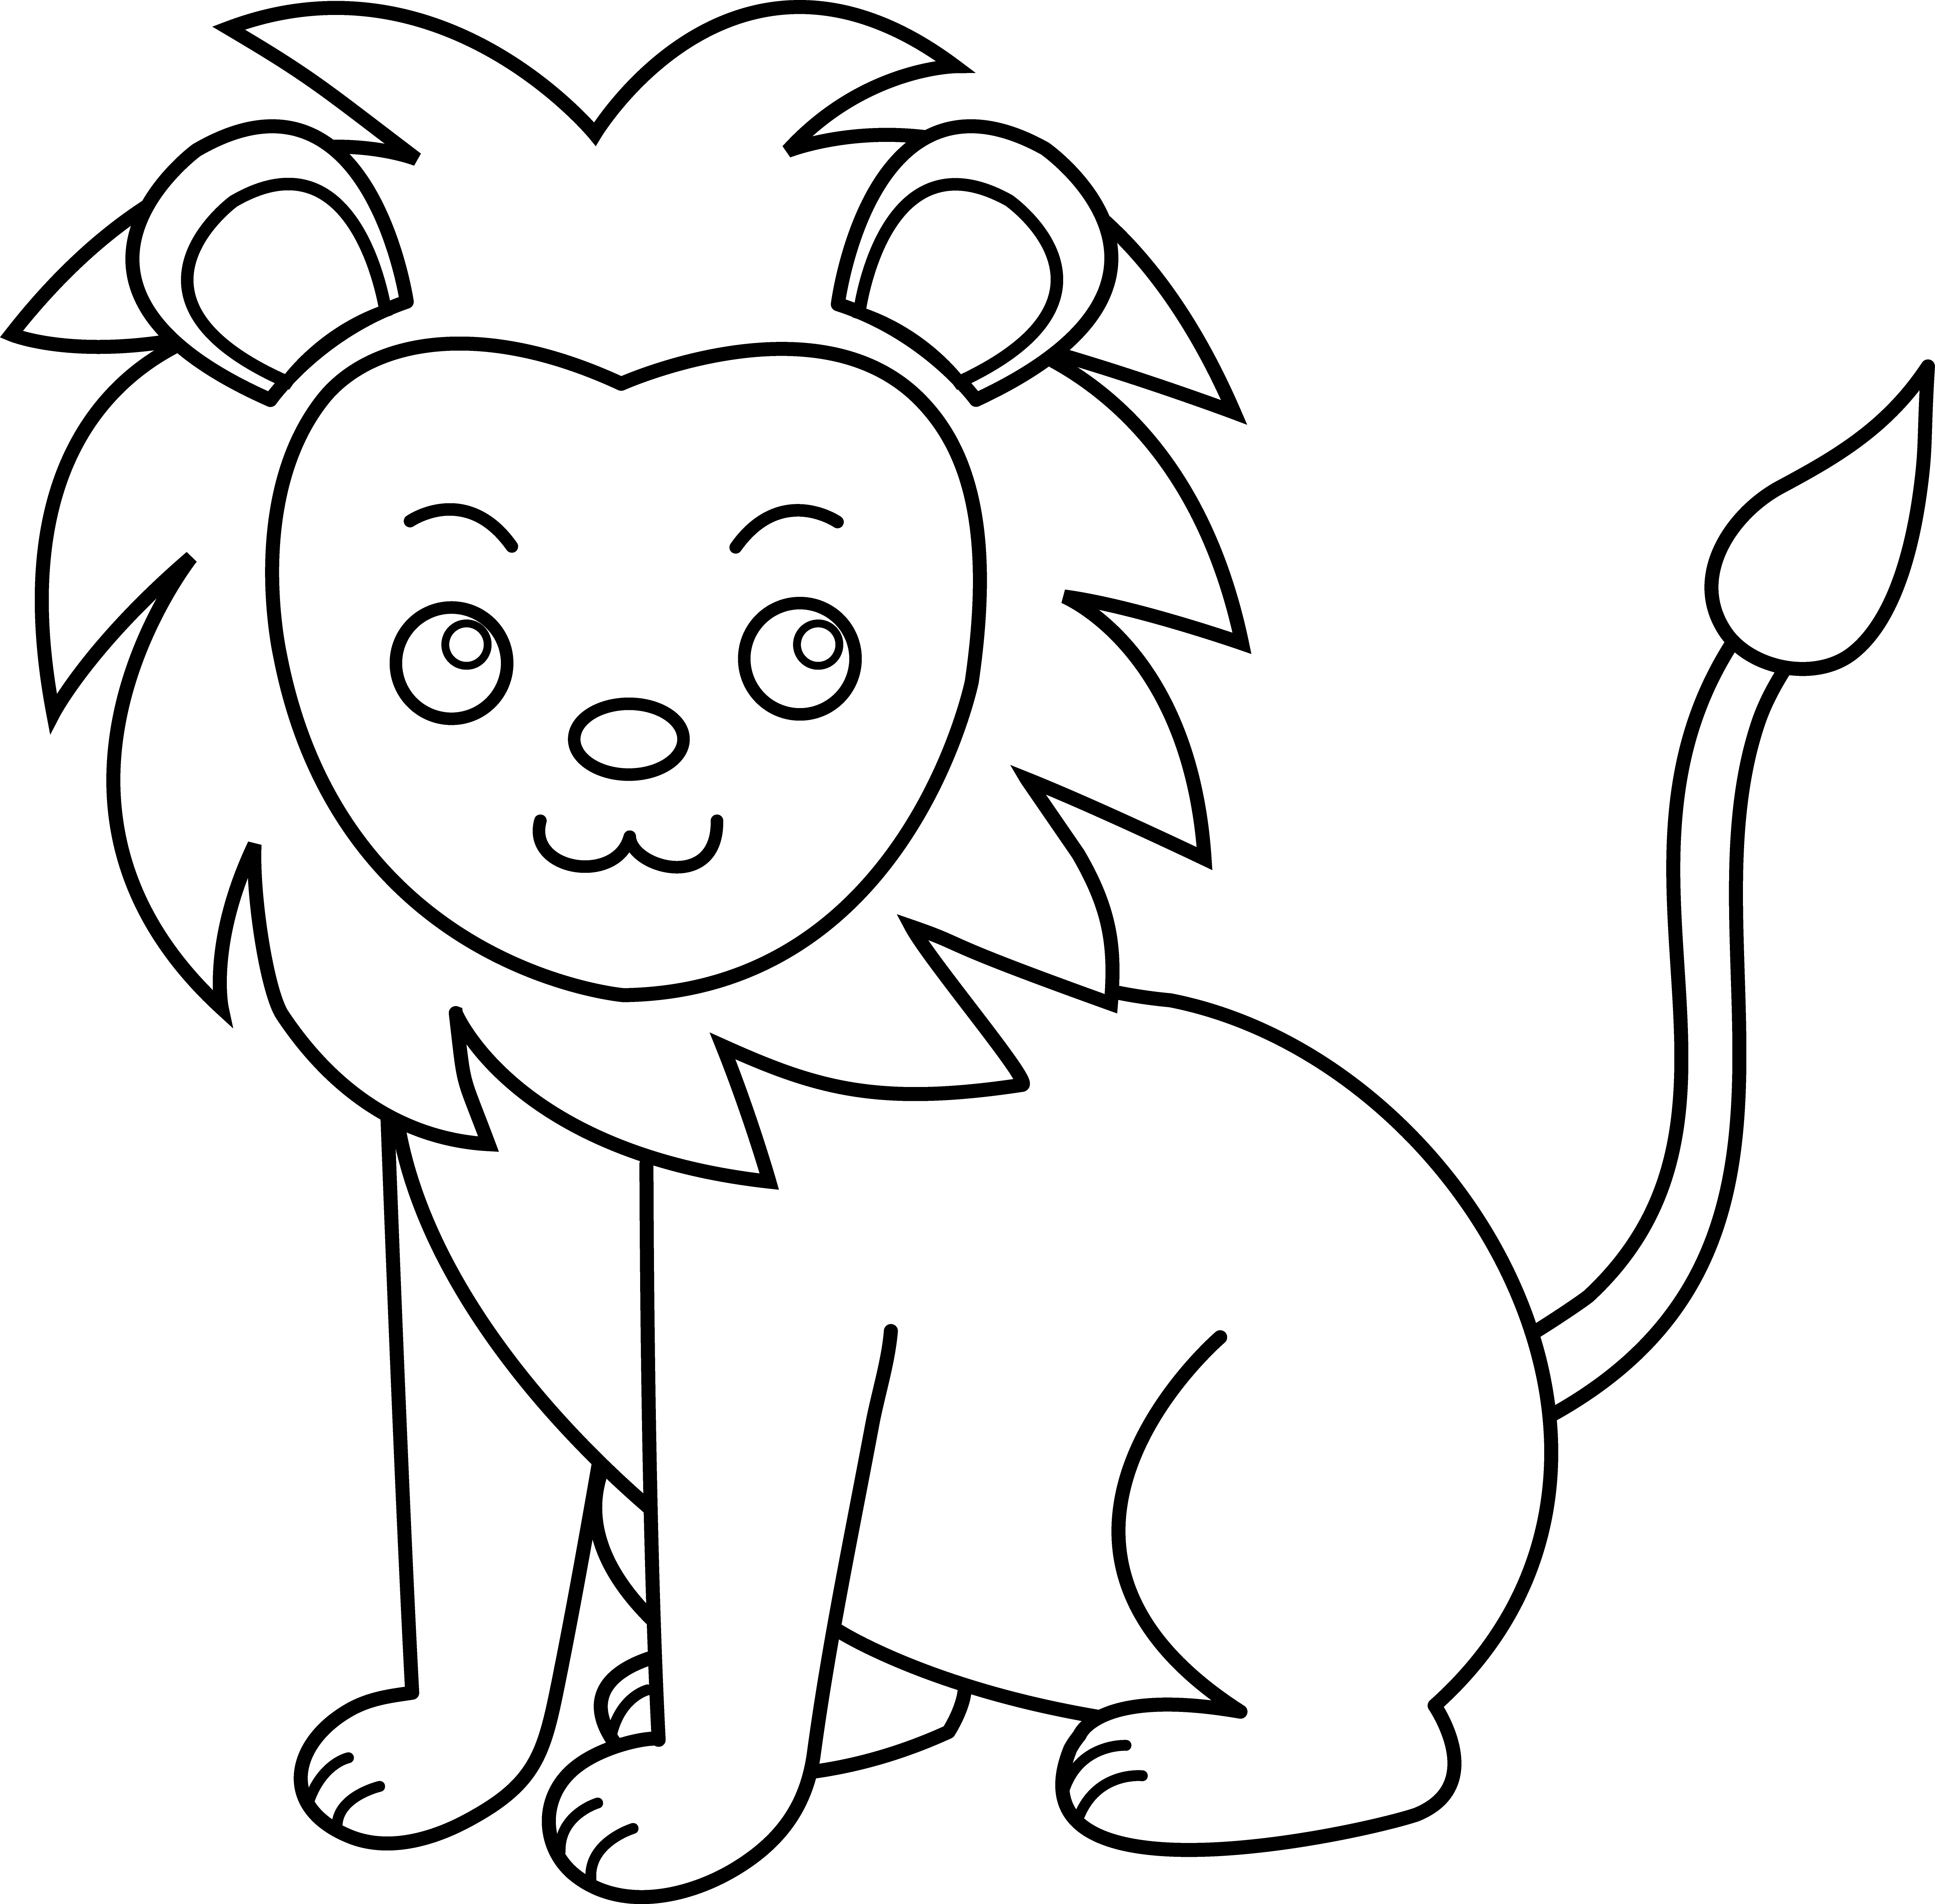 lion coloring image lion free to color for children lion kids coloring pages coloring image lion